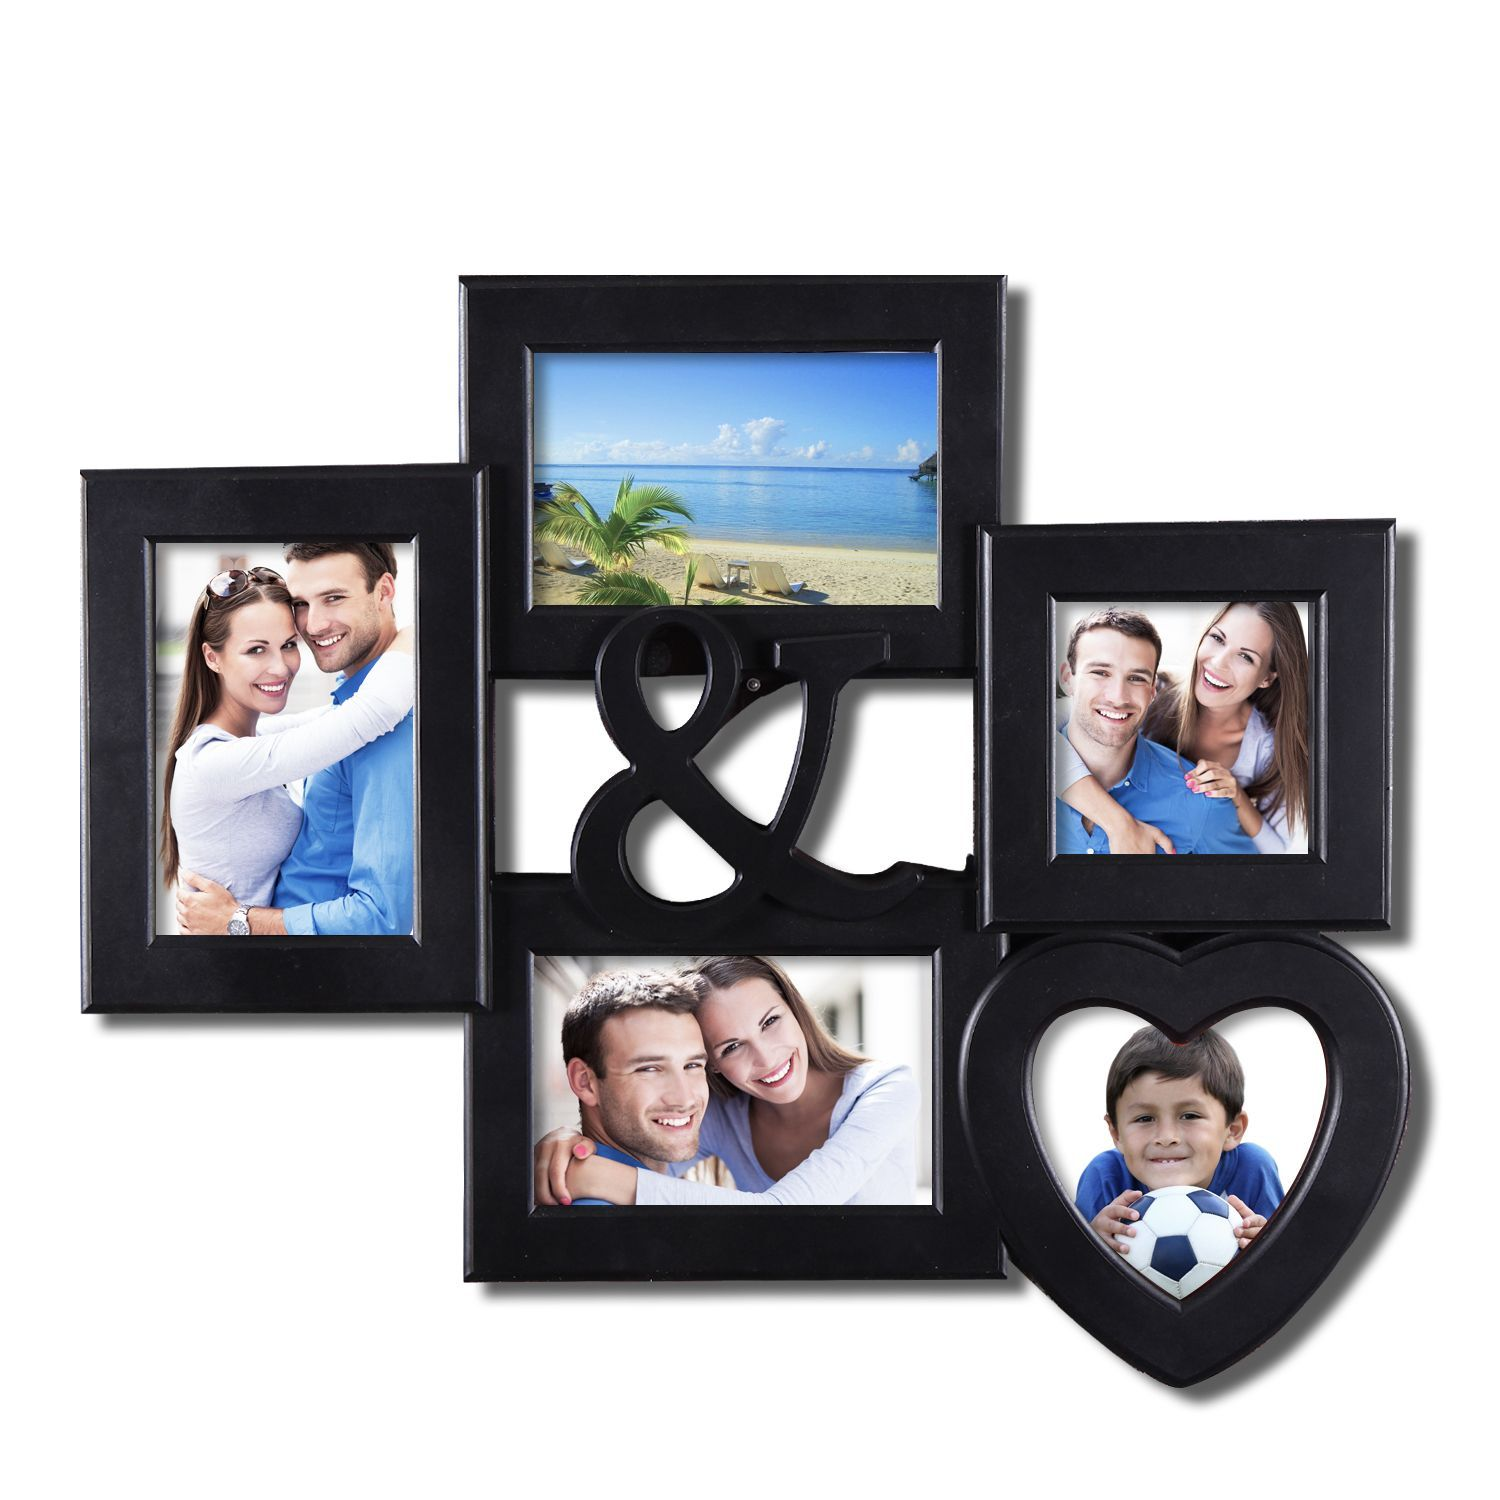 Adeco 5-opening Heart-shaped Black Wall Hanging Collage Picture ...